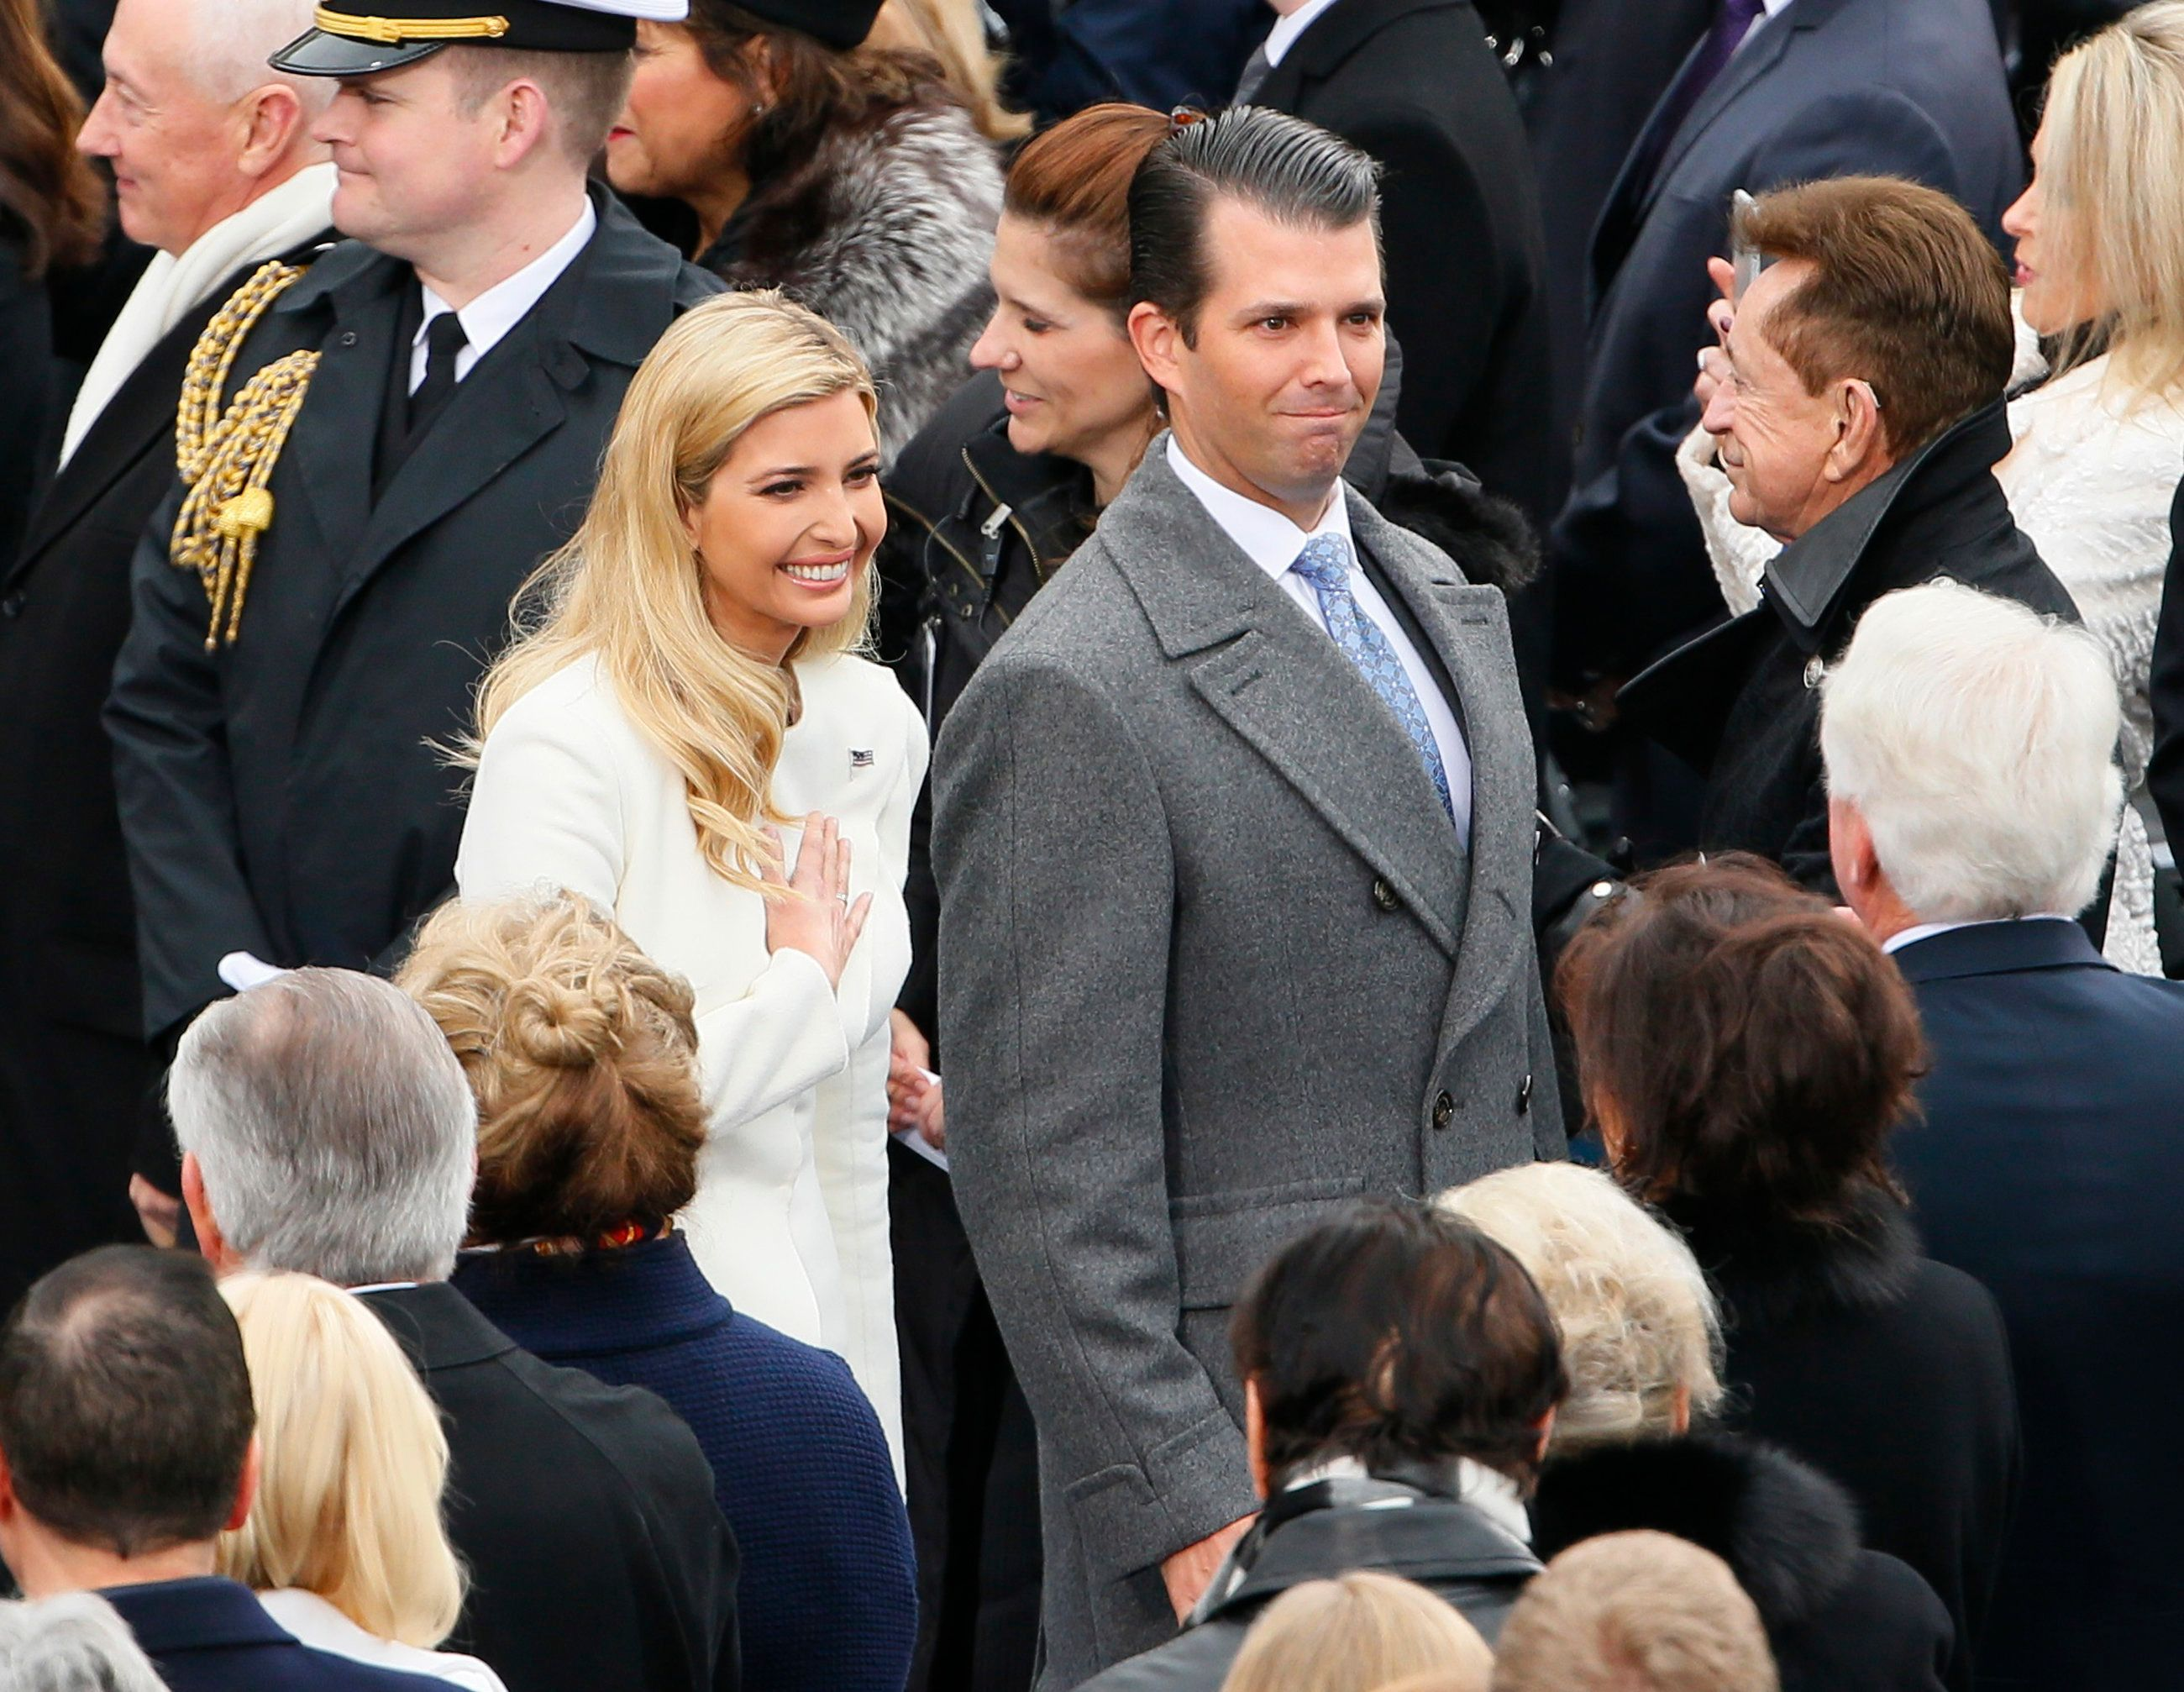 Donald Trump Jr. arrives with Ivanka Trump during inauguration ceremonies swearing in Donald Trump as the 45th president of the United States on the West front of the U.S. Capitol in Washington, U.S., January 20, 2017. REUTERS/Rick Wilking